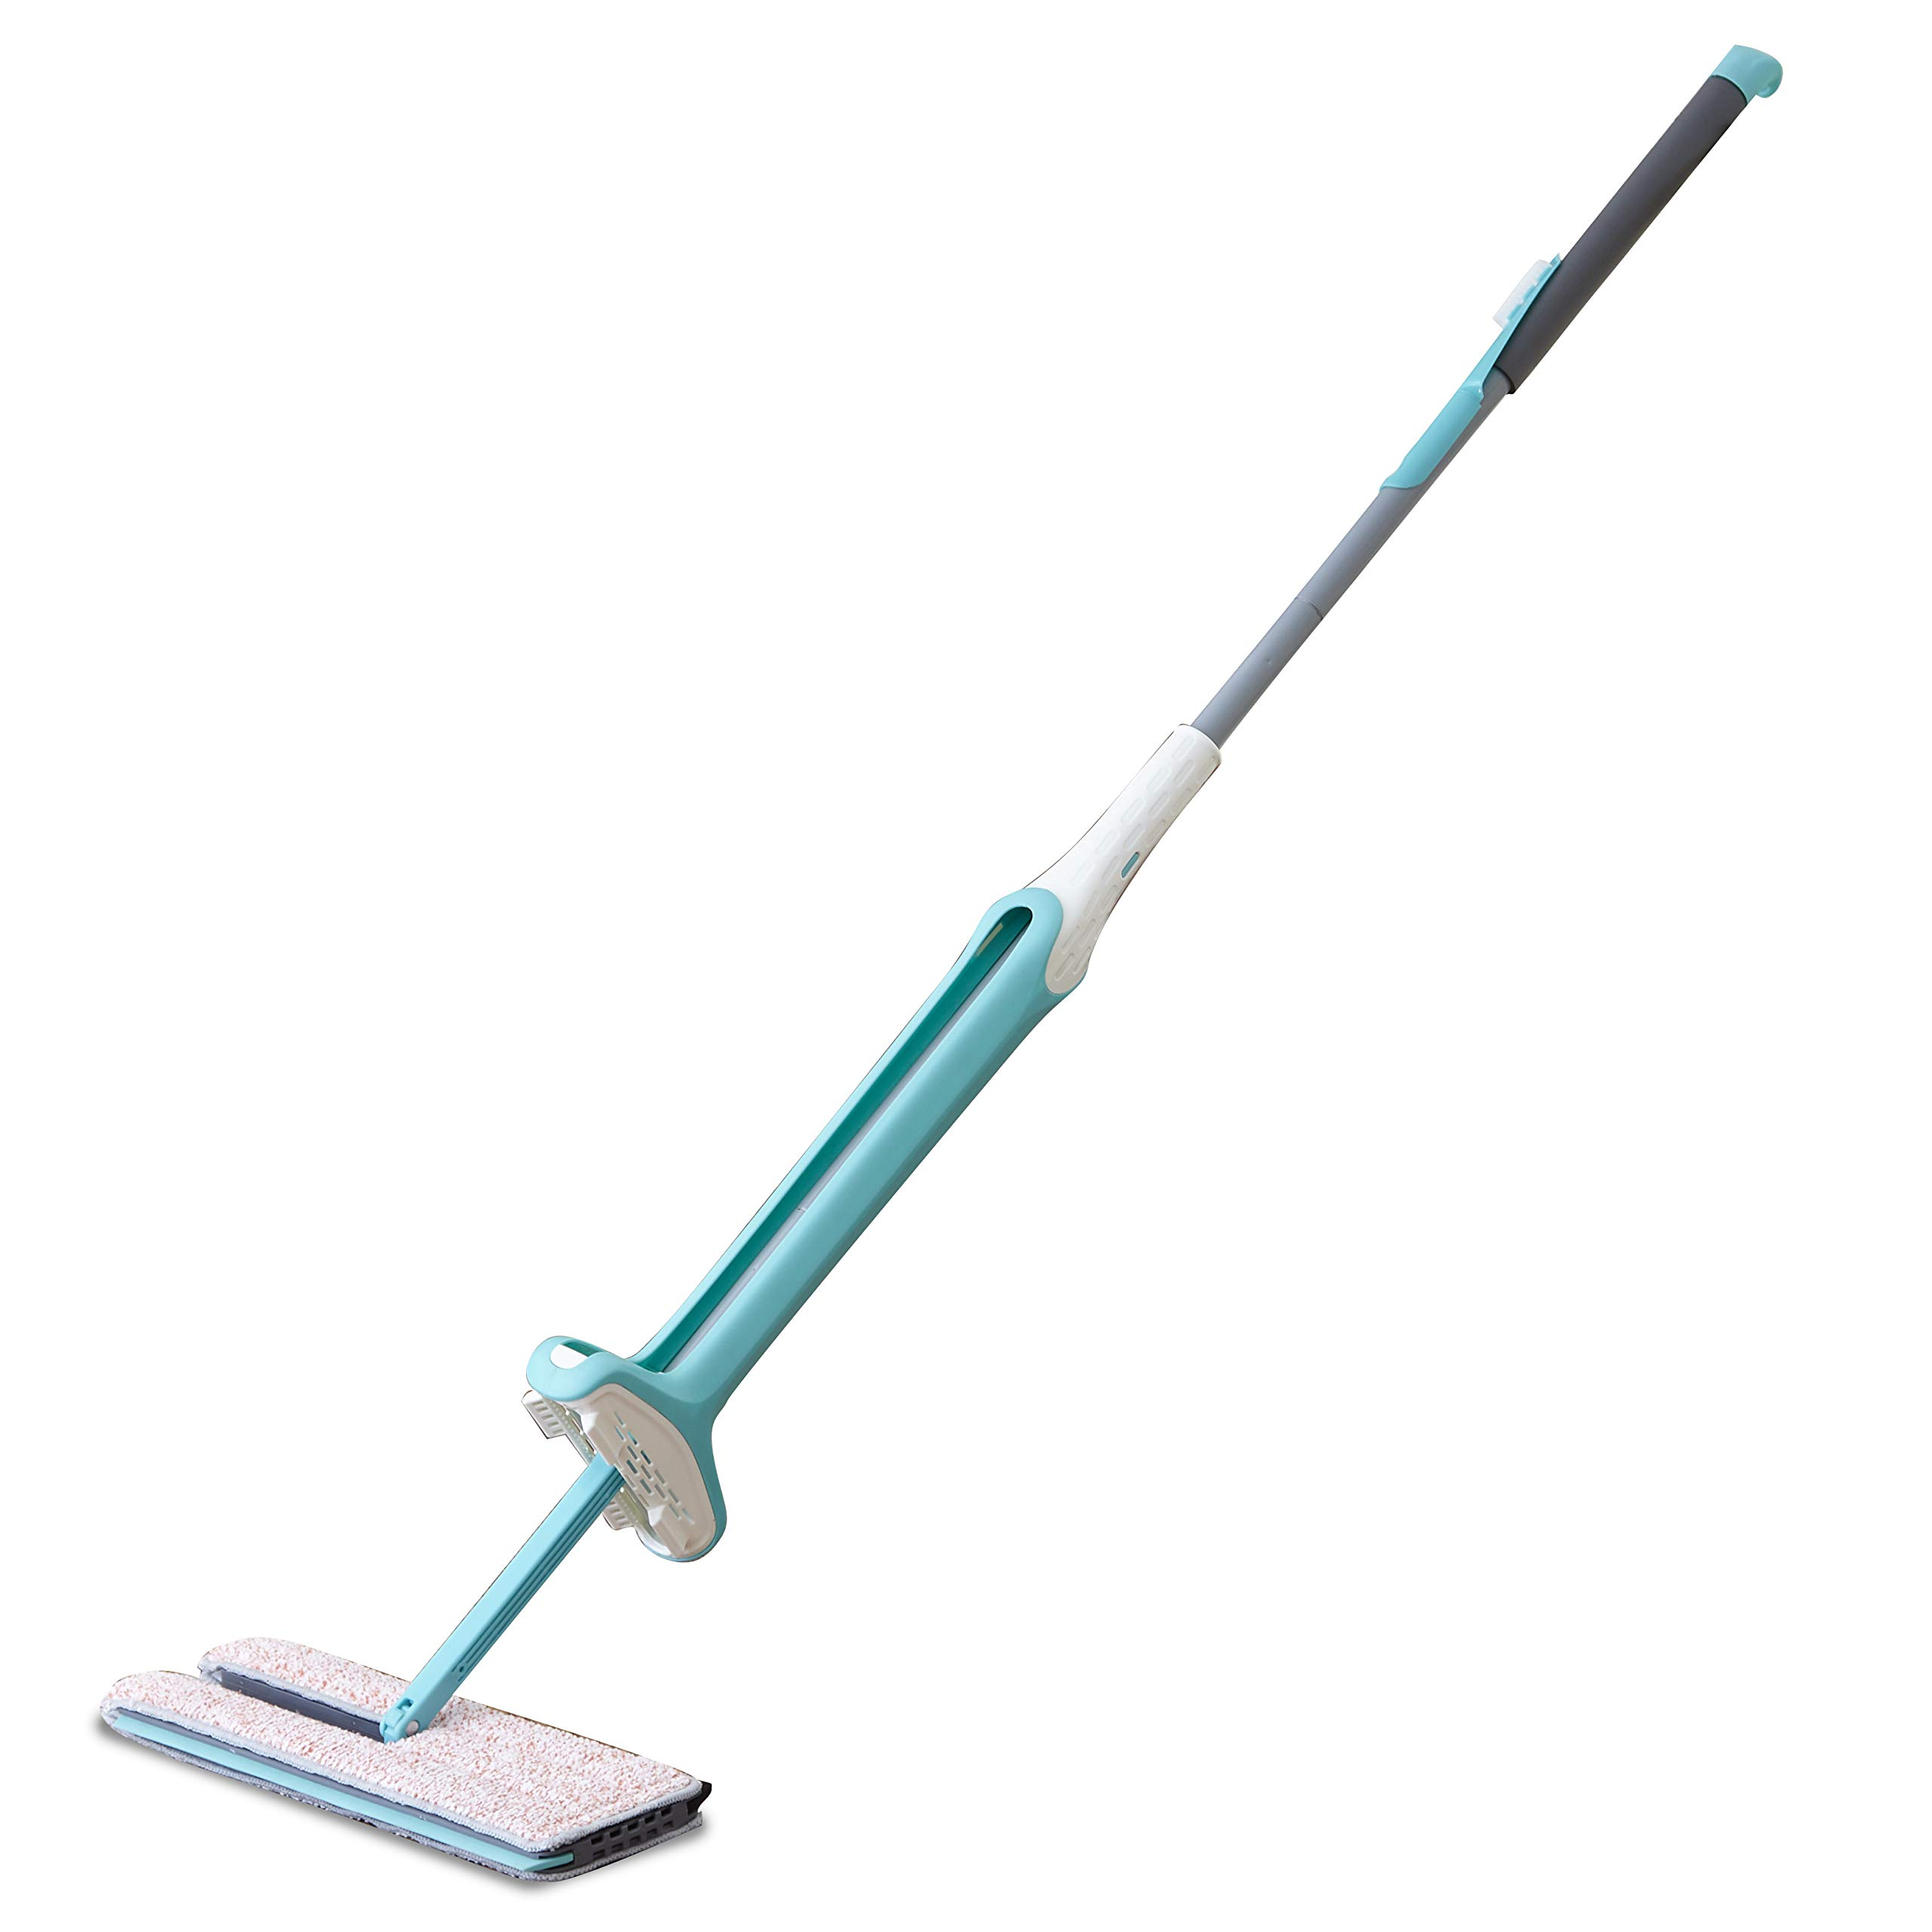 Mop and Squeeze - Double Sided Hands-Free Cleaner For Floors, Windows and Much More